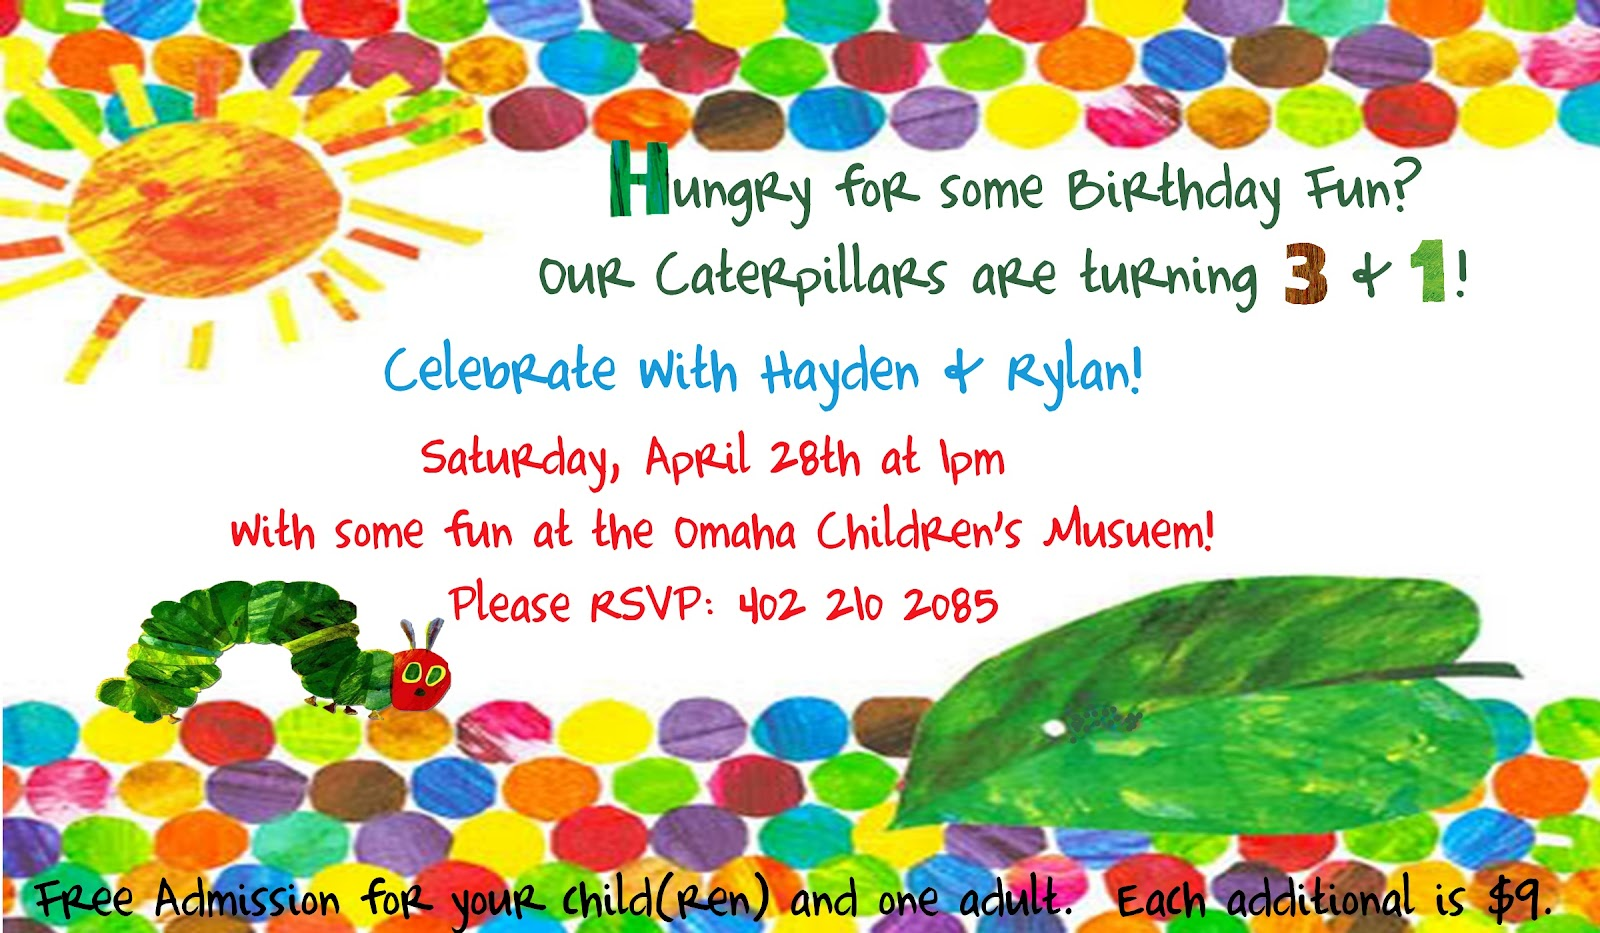 I Love Making Awesome Stuff!: The Very Hungry Caterpillar Party